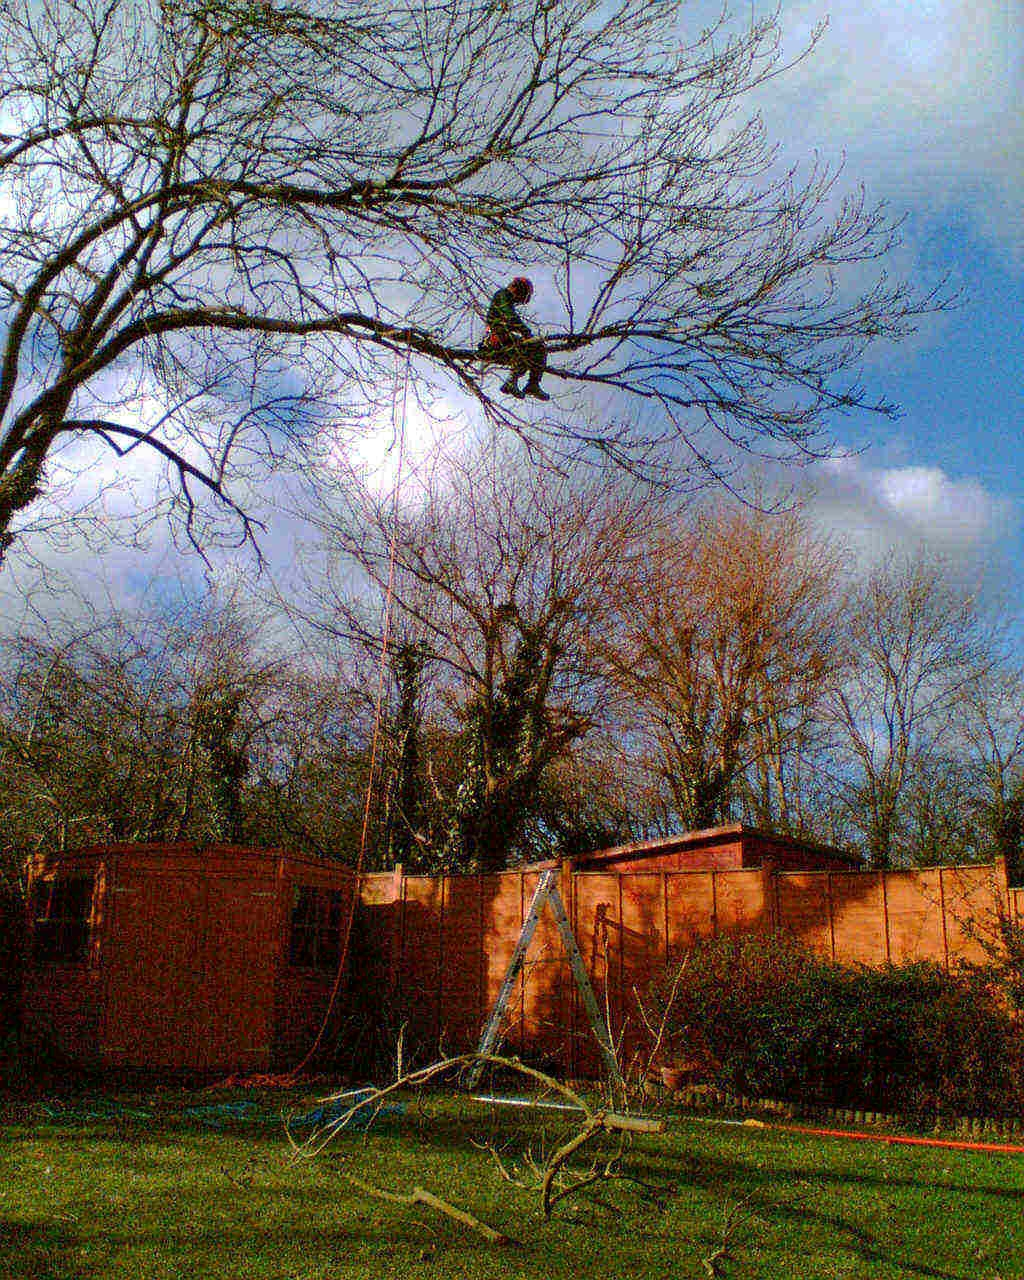 Tree surgeon dealing with obstacles